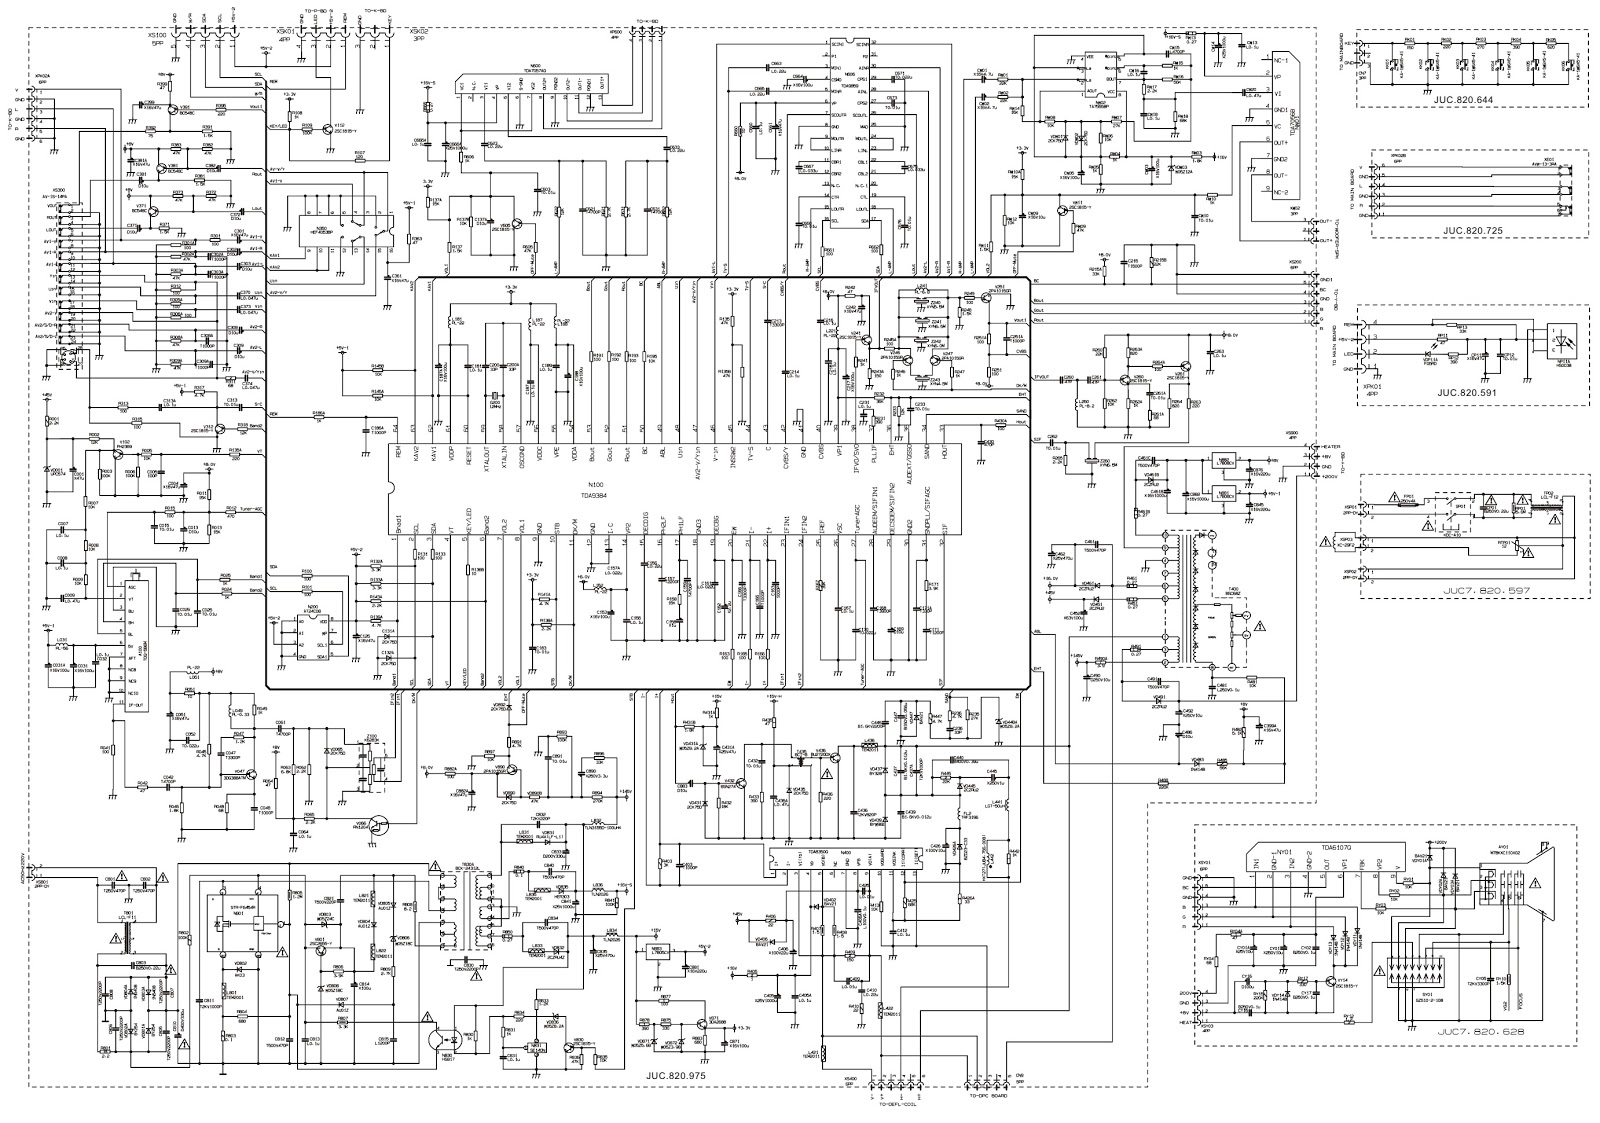 hight resolution of tv circuit board diagram pdf electrical wiring diagramled tv diagram pdf wiring diagram loadsamsung led tv